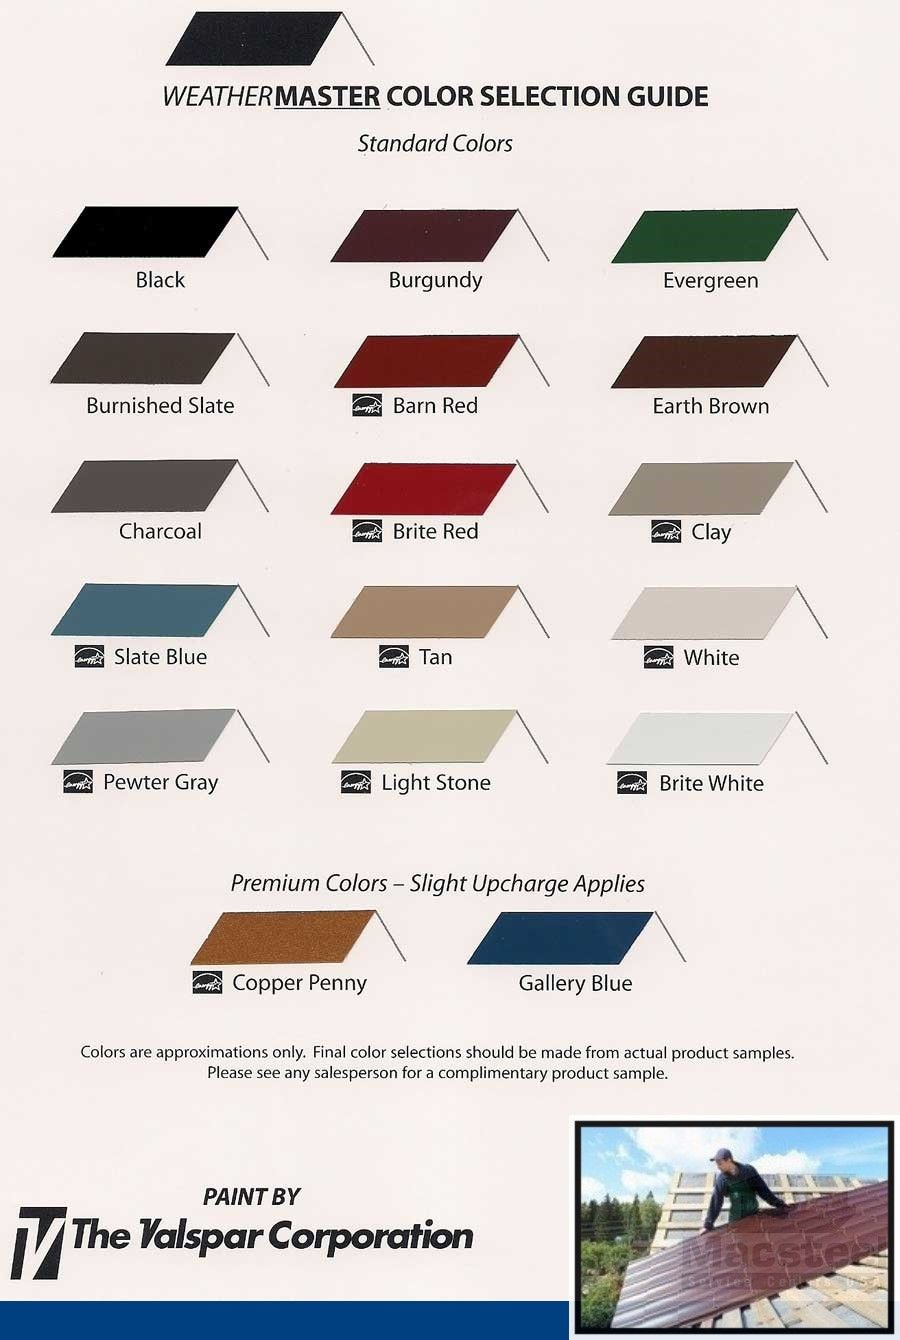 Metal Roof Color Change And Metal Roofing Burnished Slate In 2020 Metal Roof Colors Metal Roof Roof Colors